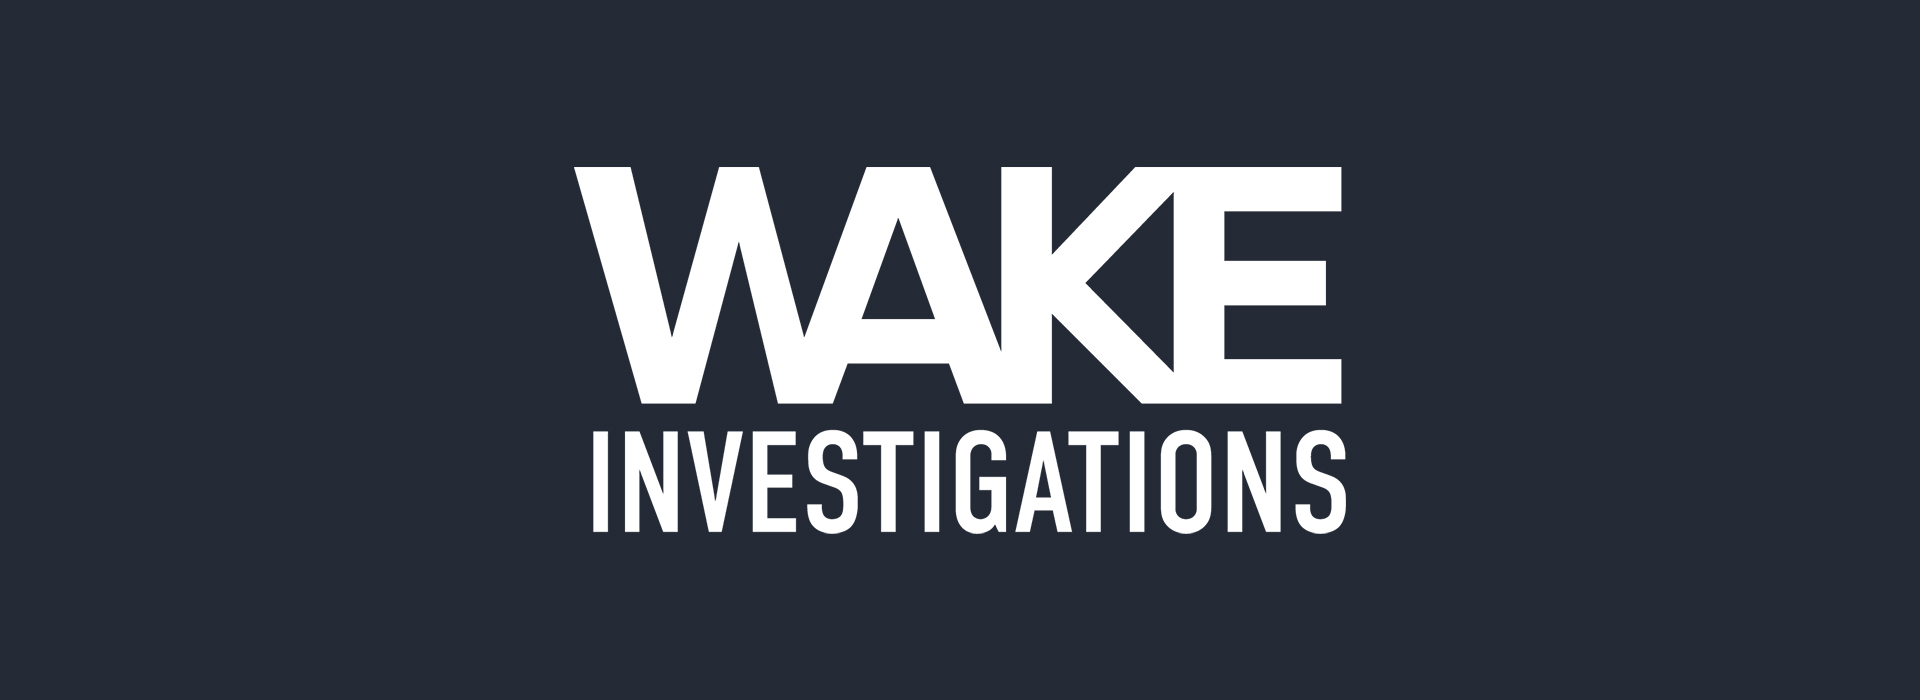 Wake Investigations - The following footage was recorded in the Republic of Ireland throughout 2018/2019. This imagery is graphic as it depicts nonhuman animal rights violations.